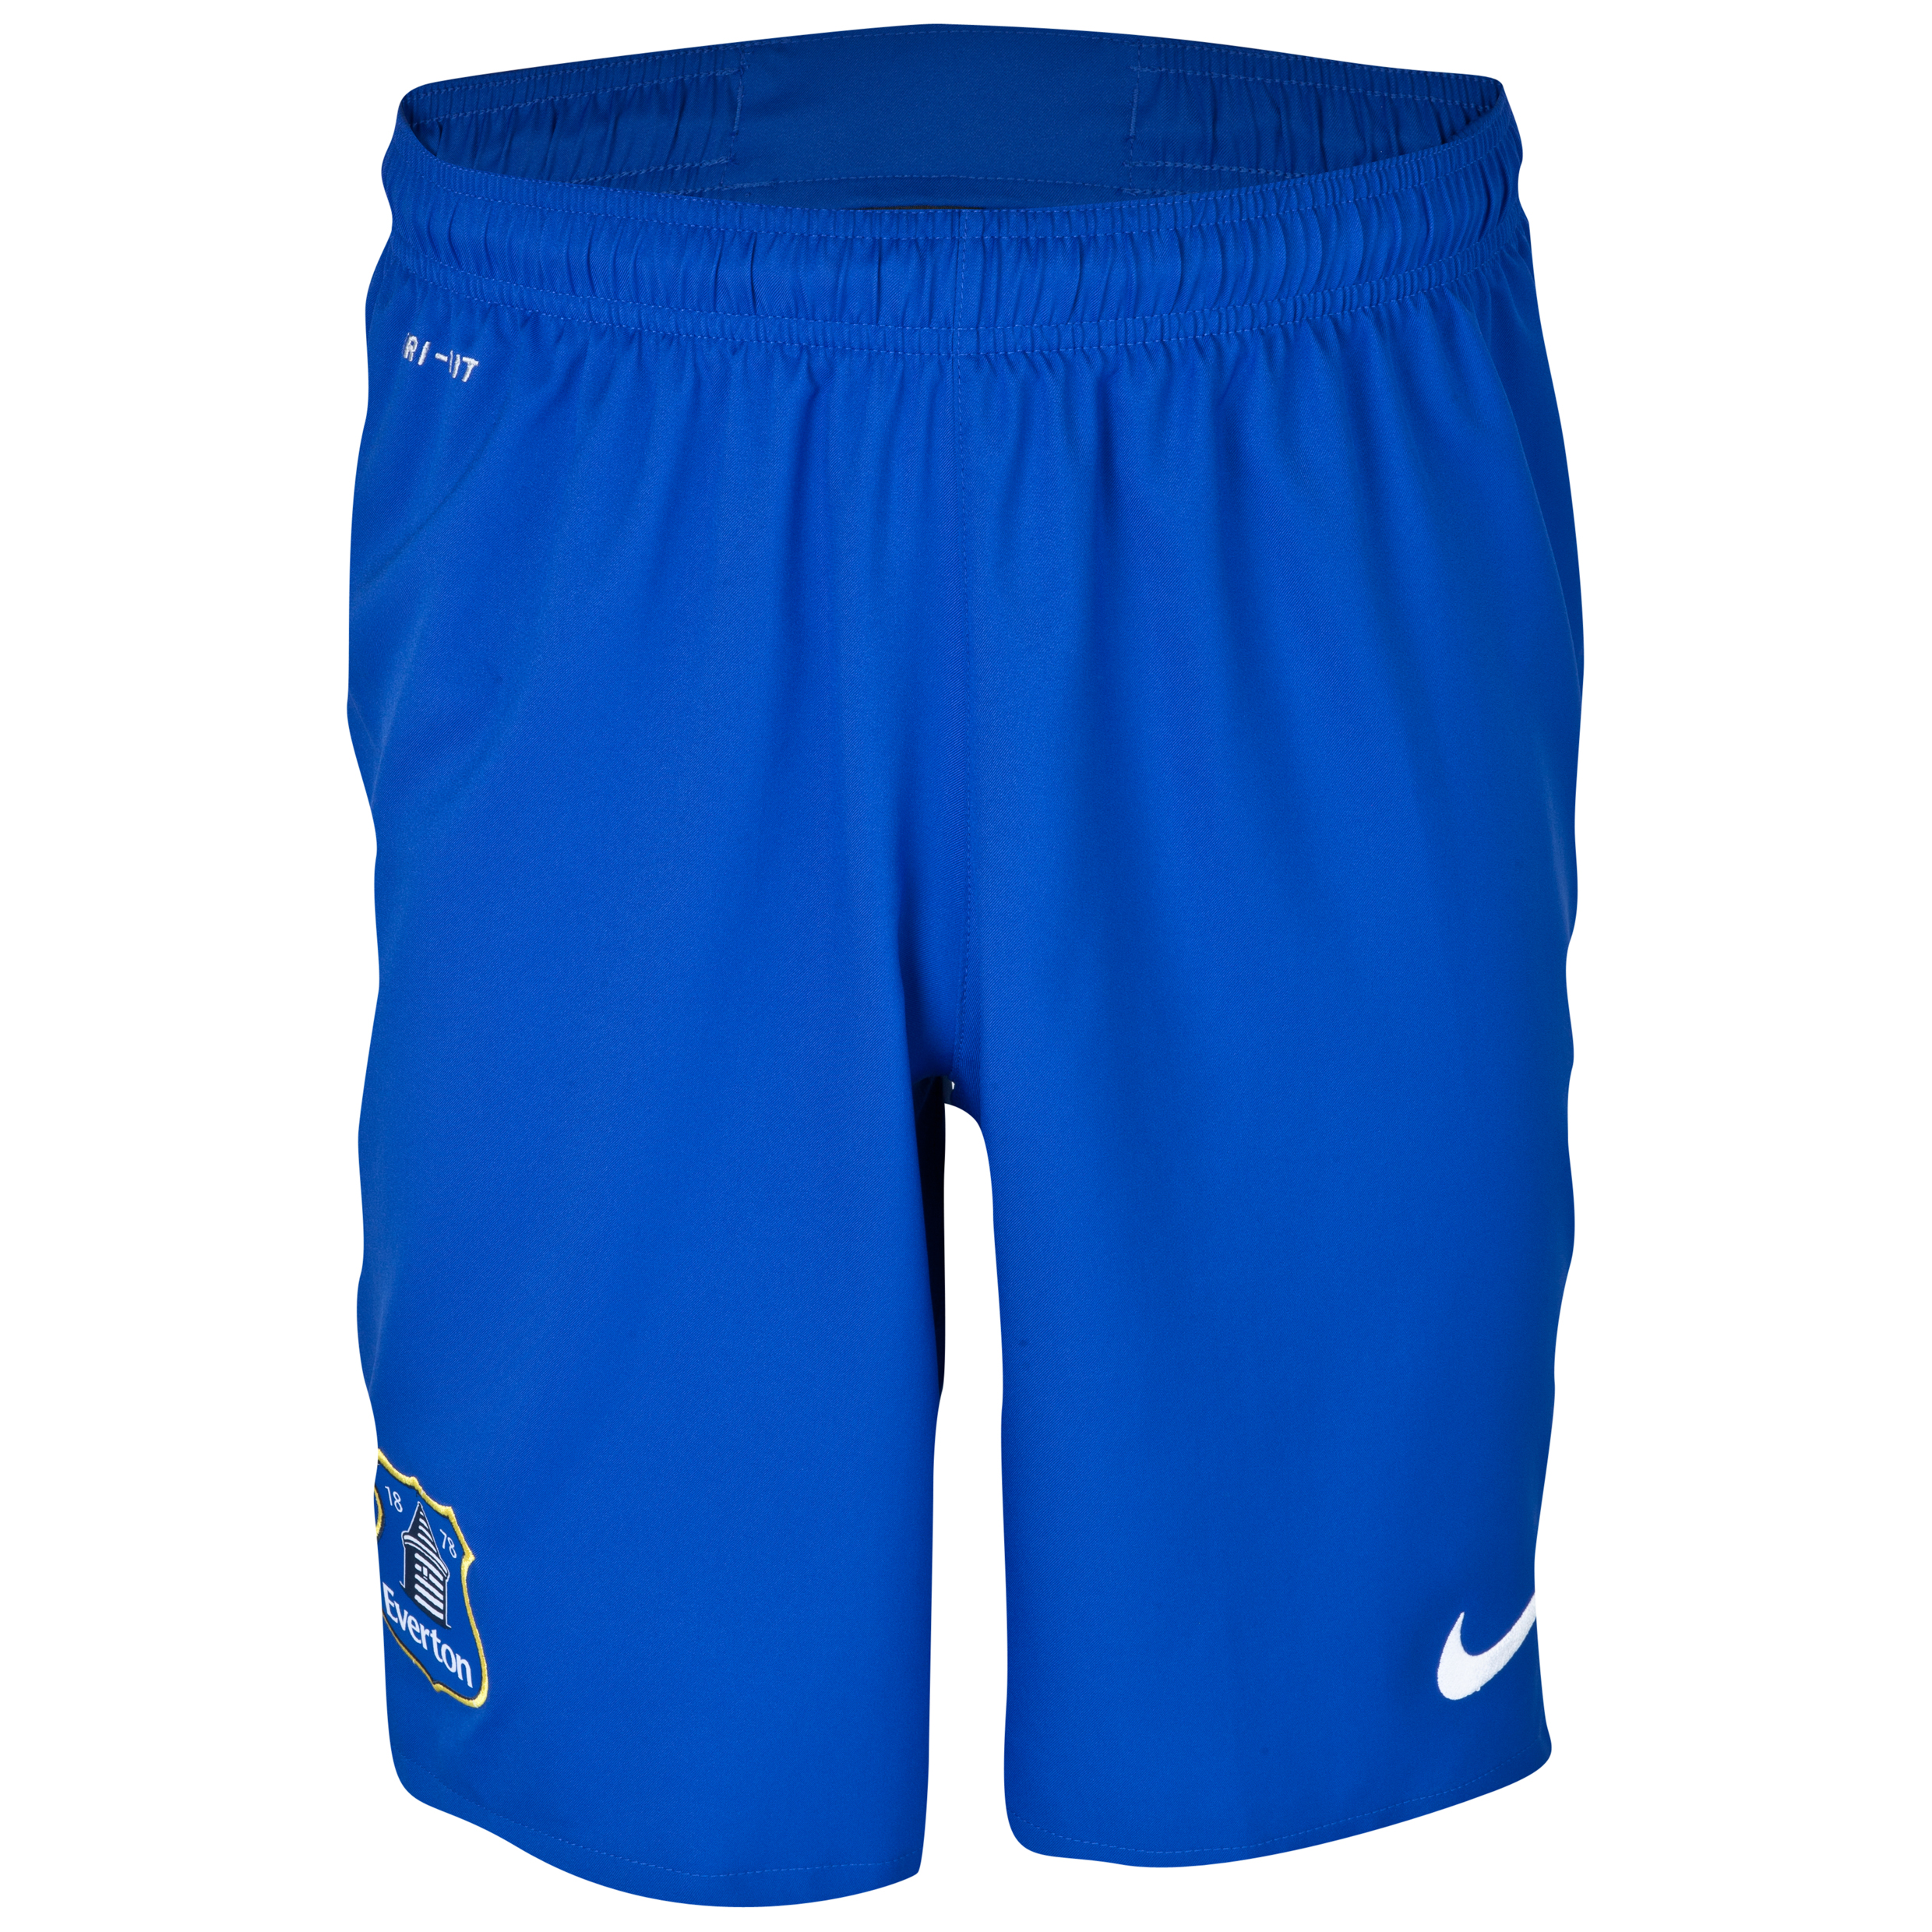 Everton Away Short 2013/14 Blue